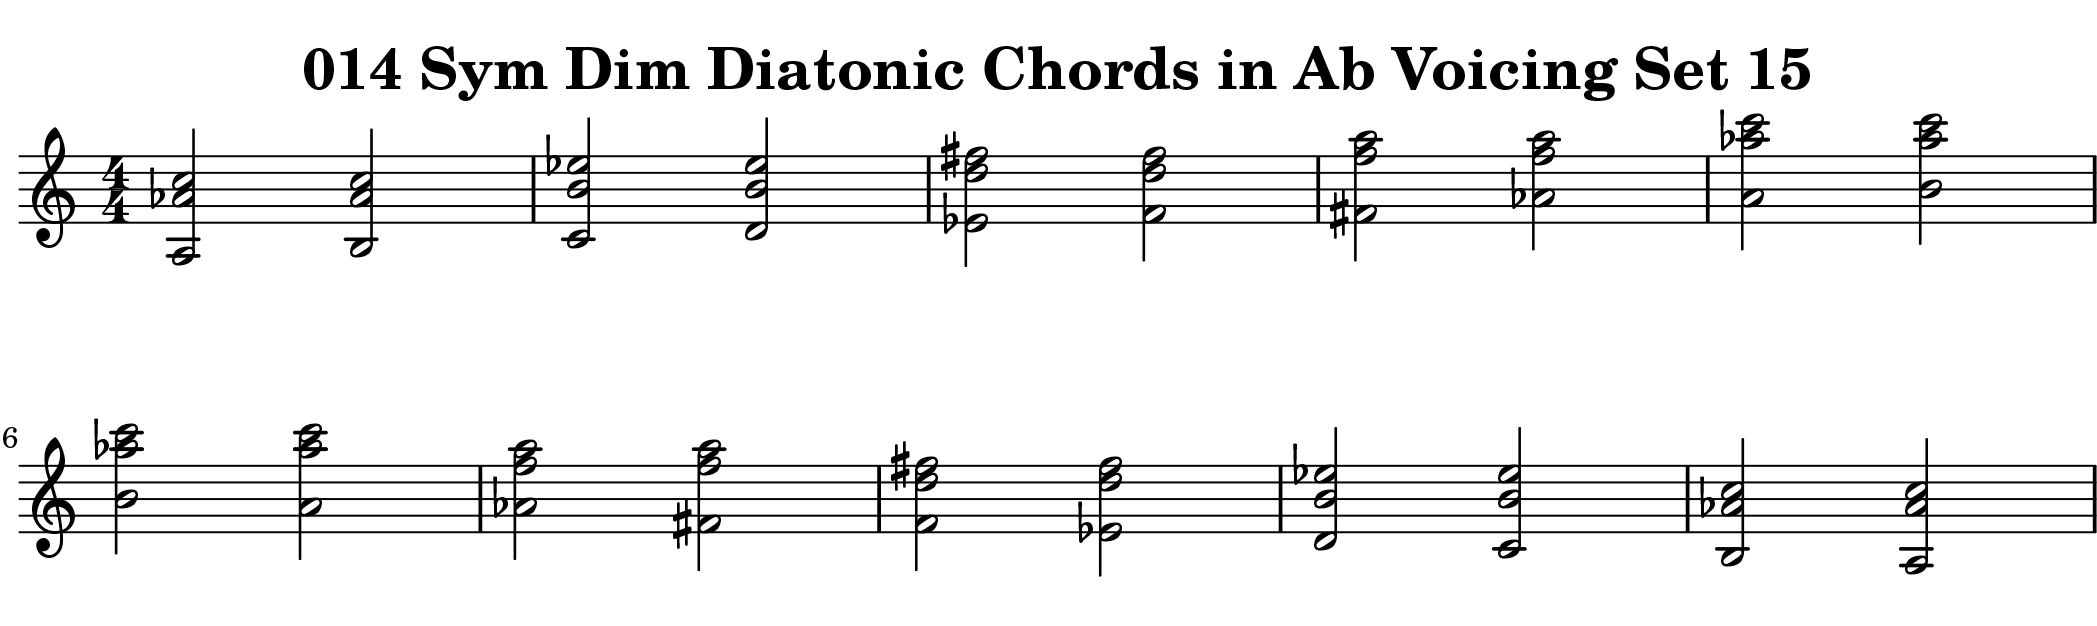 ChopBusters 014 Example from Diatonic Chords of Symmetrical Diminished Scale Ascending and Descending